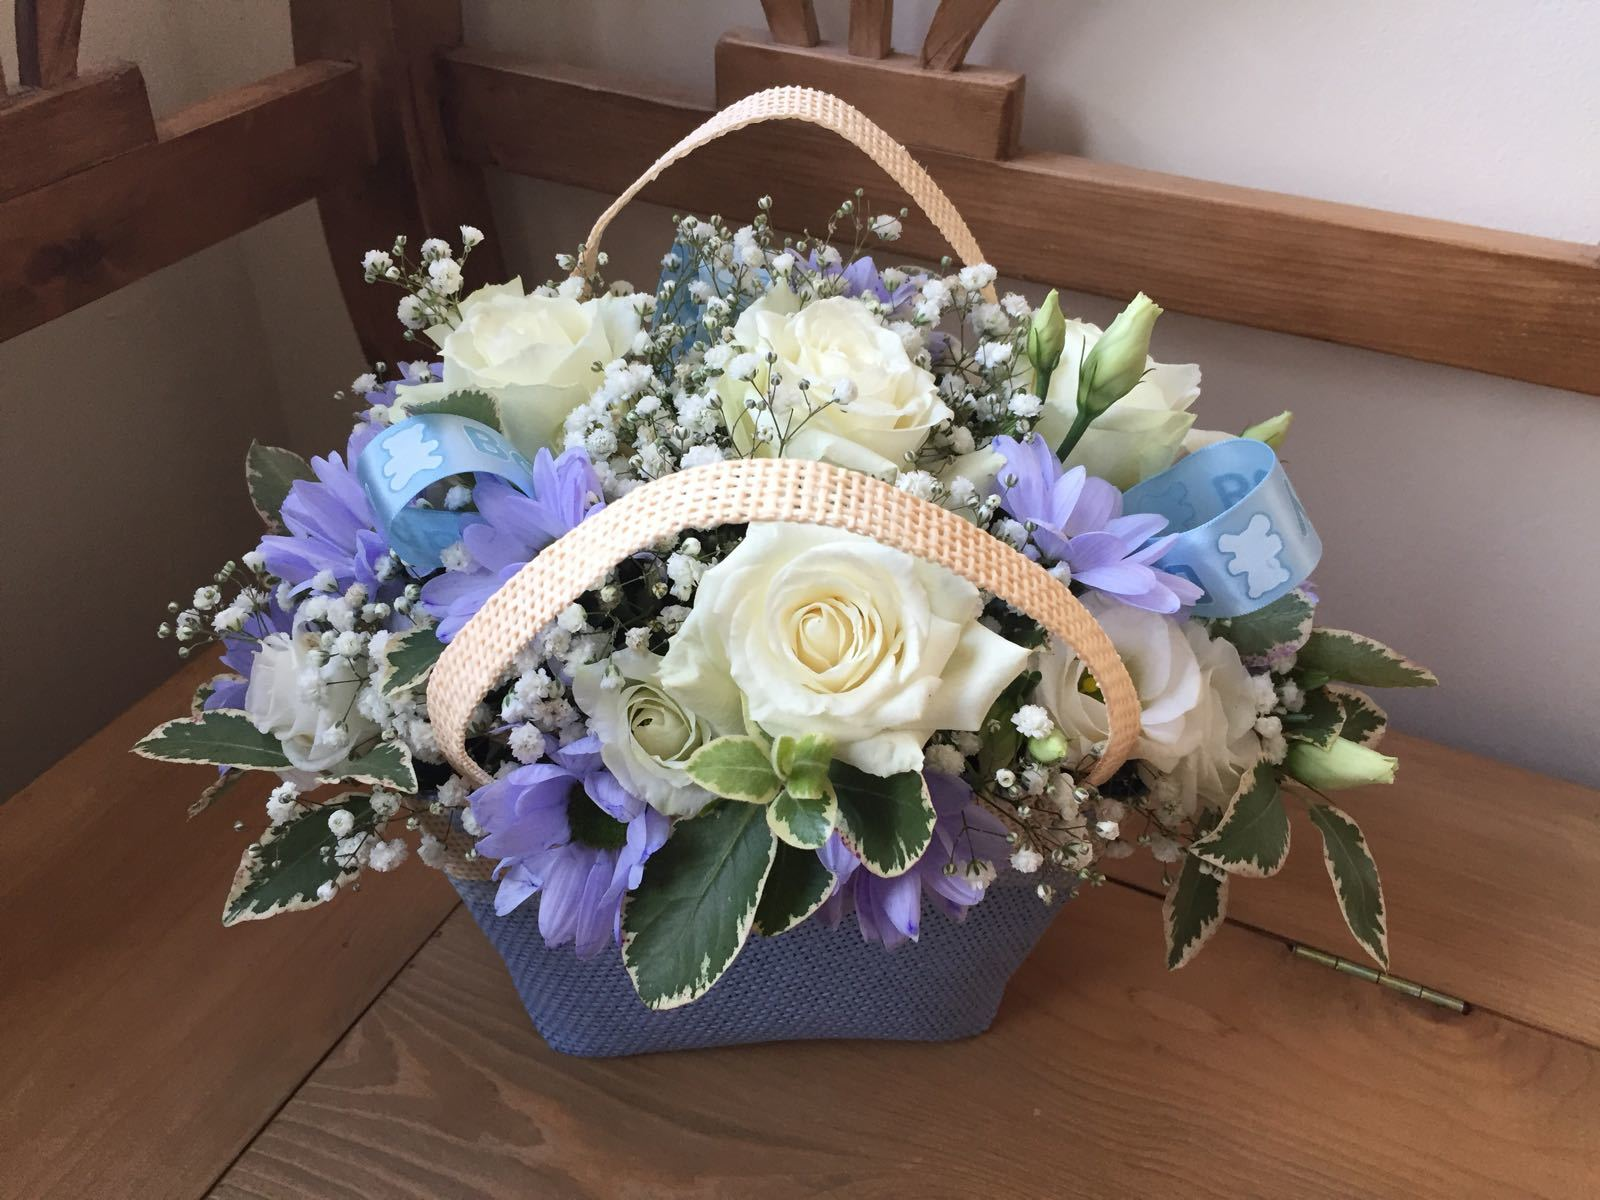 BLUE BIRTH ANNOUCEMENT GIFT BASKET Blue or pink for a new arrival